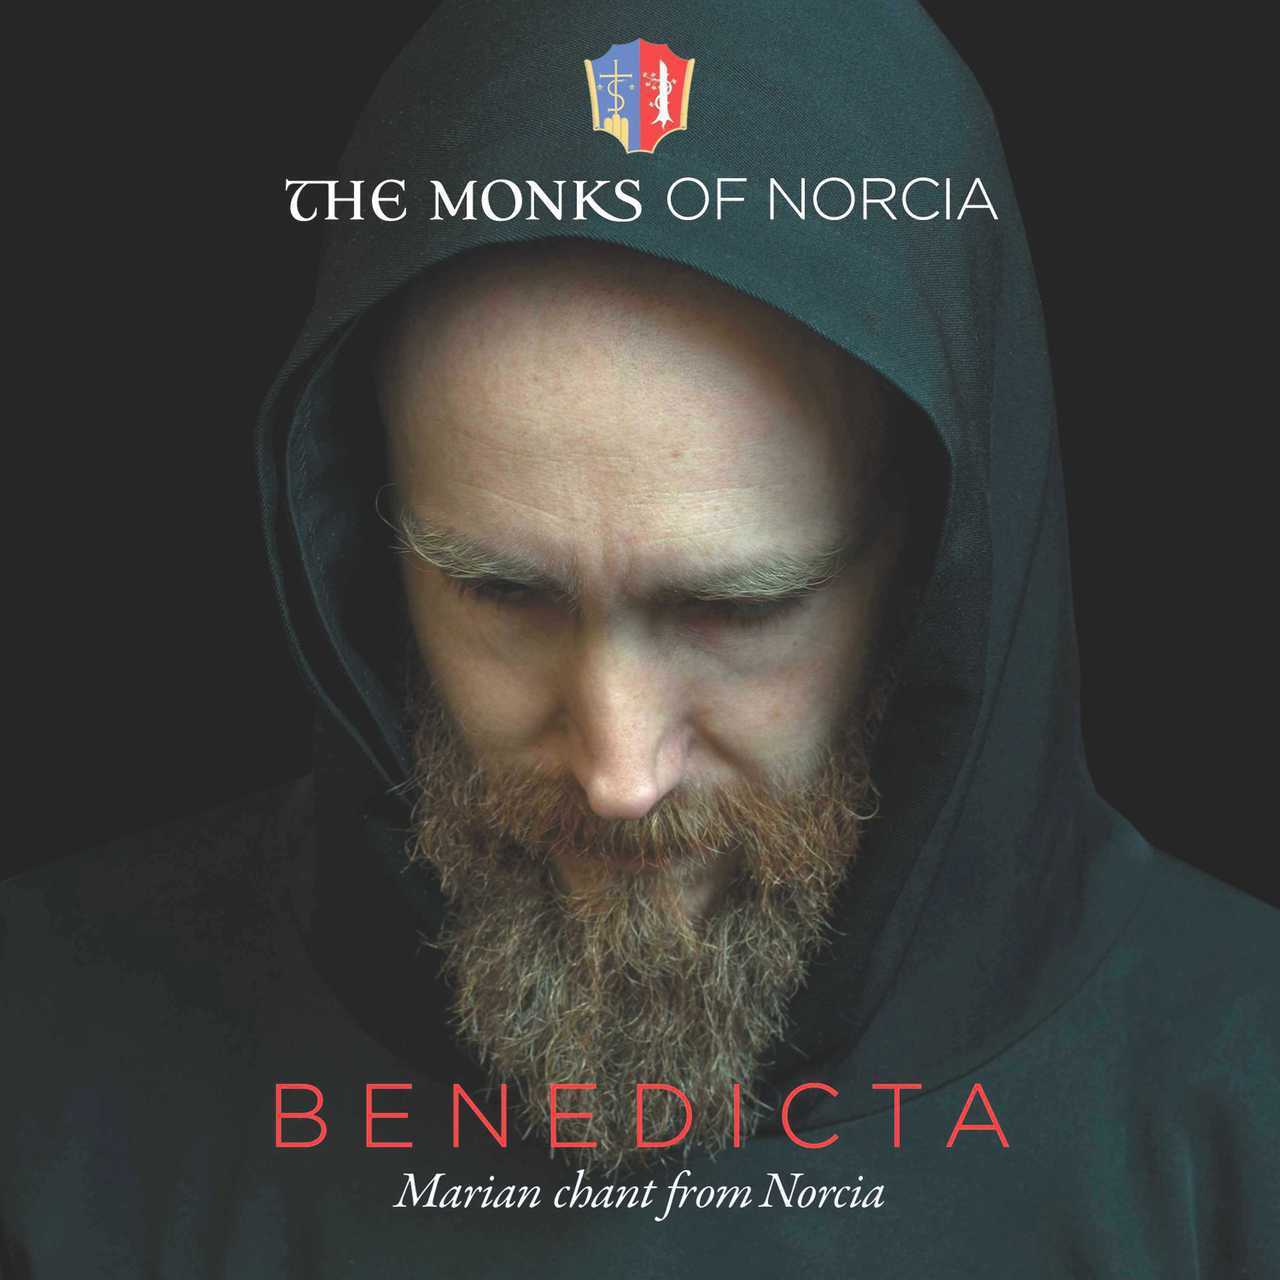 Benedicta marian chant from norcia by the monks of norcia